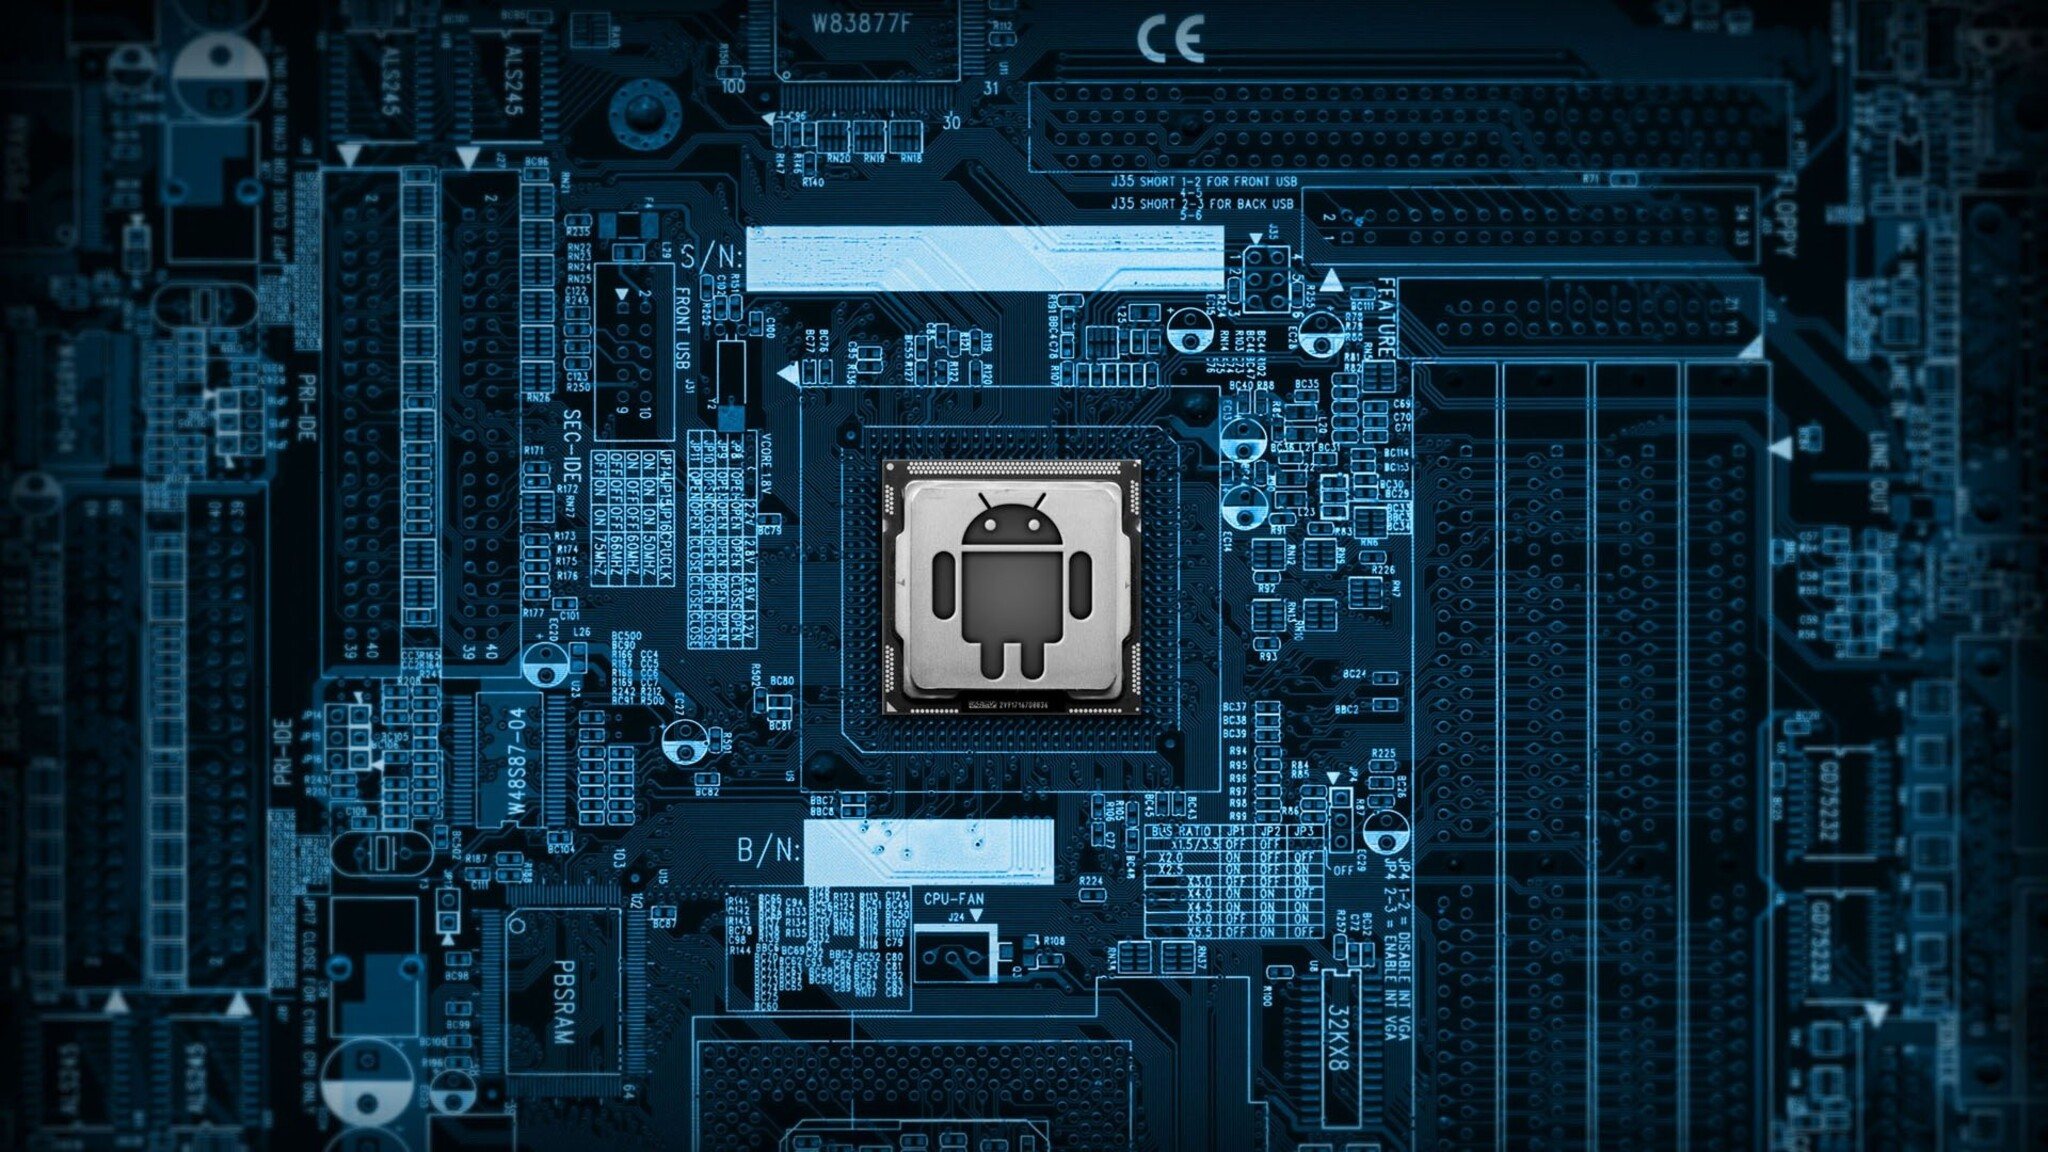 2048x1152 android circuit board 2048x1152 resolution hd 4k - Circuit board wallpaper android ...